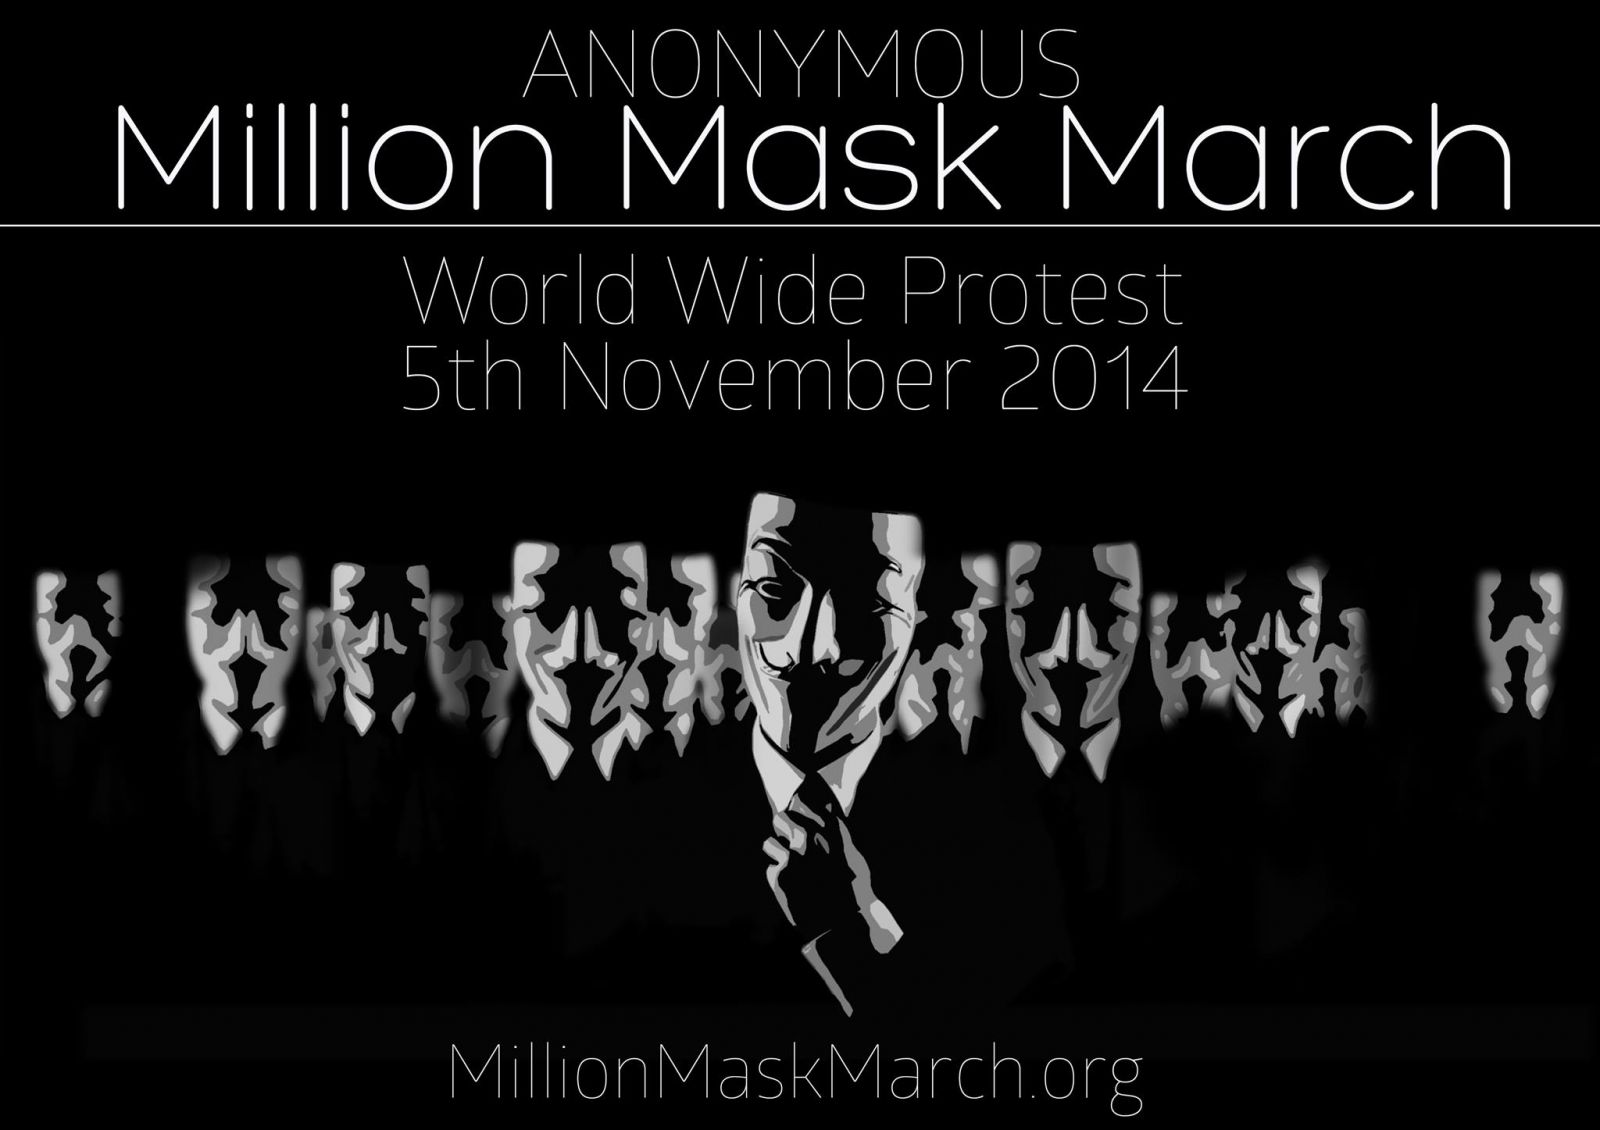 Anonymous Hacker Wallpaper Quotes November 5th Anonymous Million Mask March Taking Place